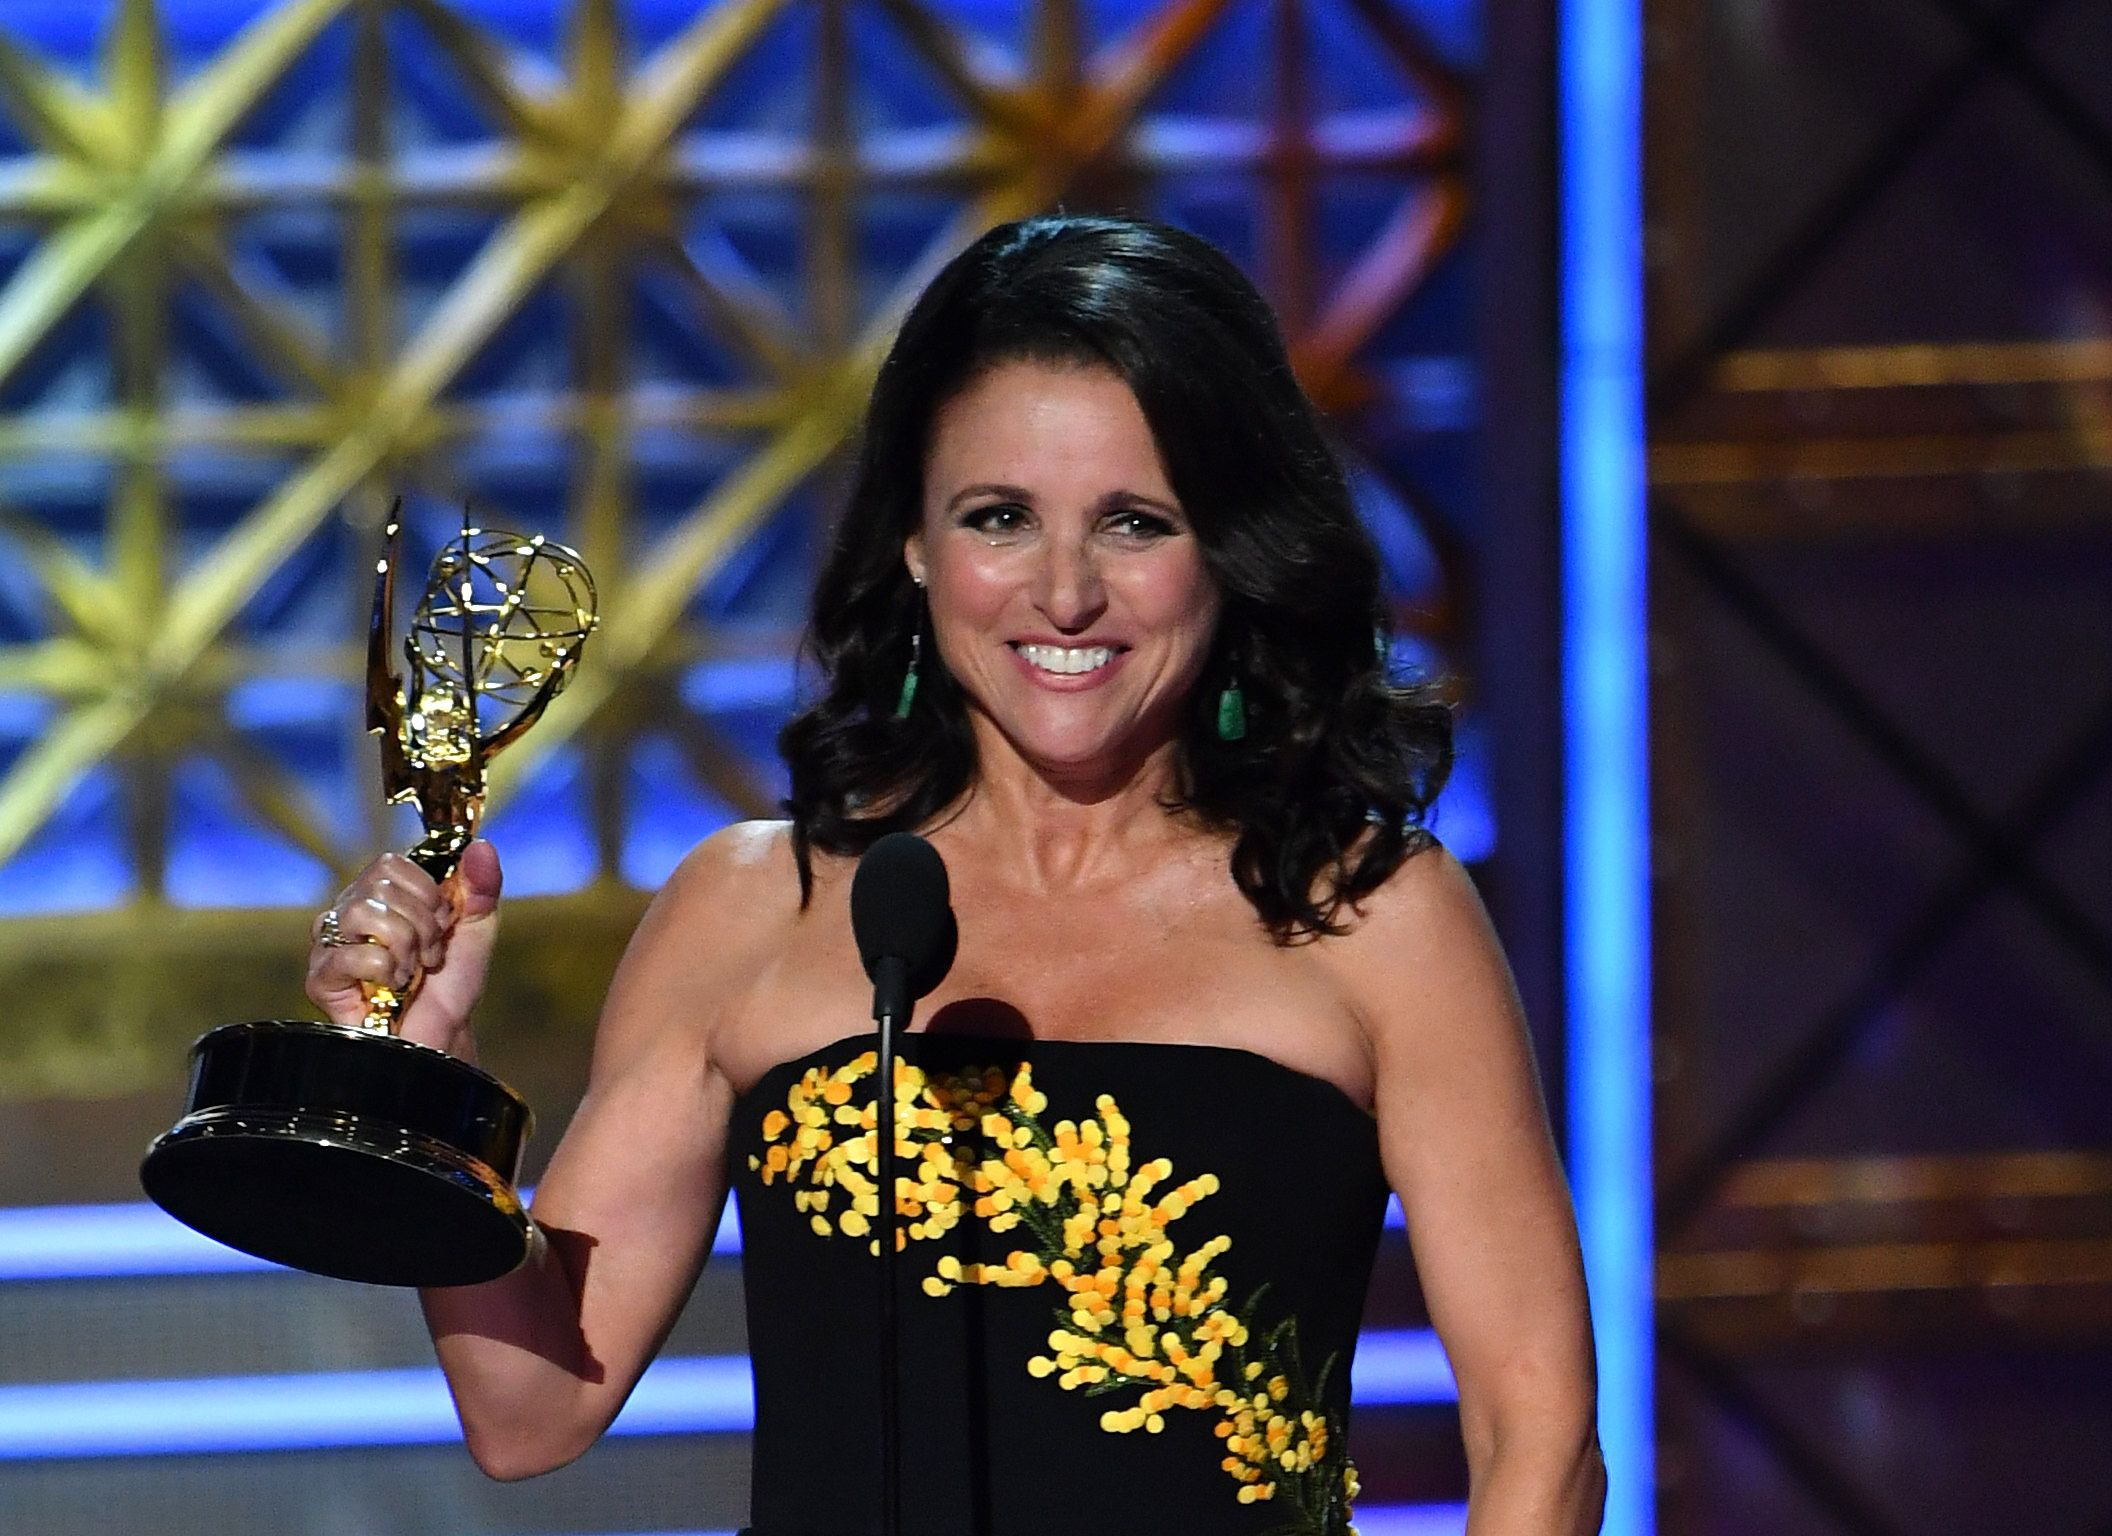 Veep's Julia Louis-Dreyfus reveals she has breast cancer in emotional letter calling for universal healthcare